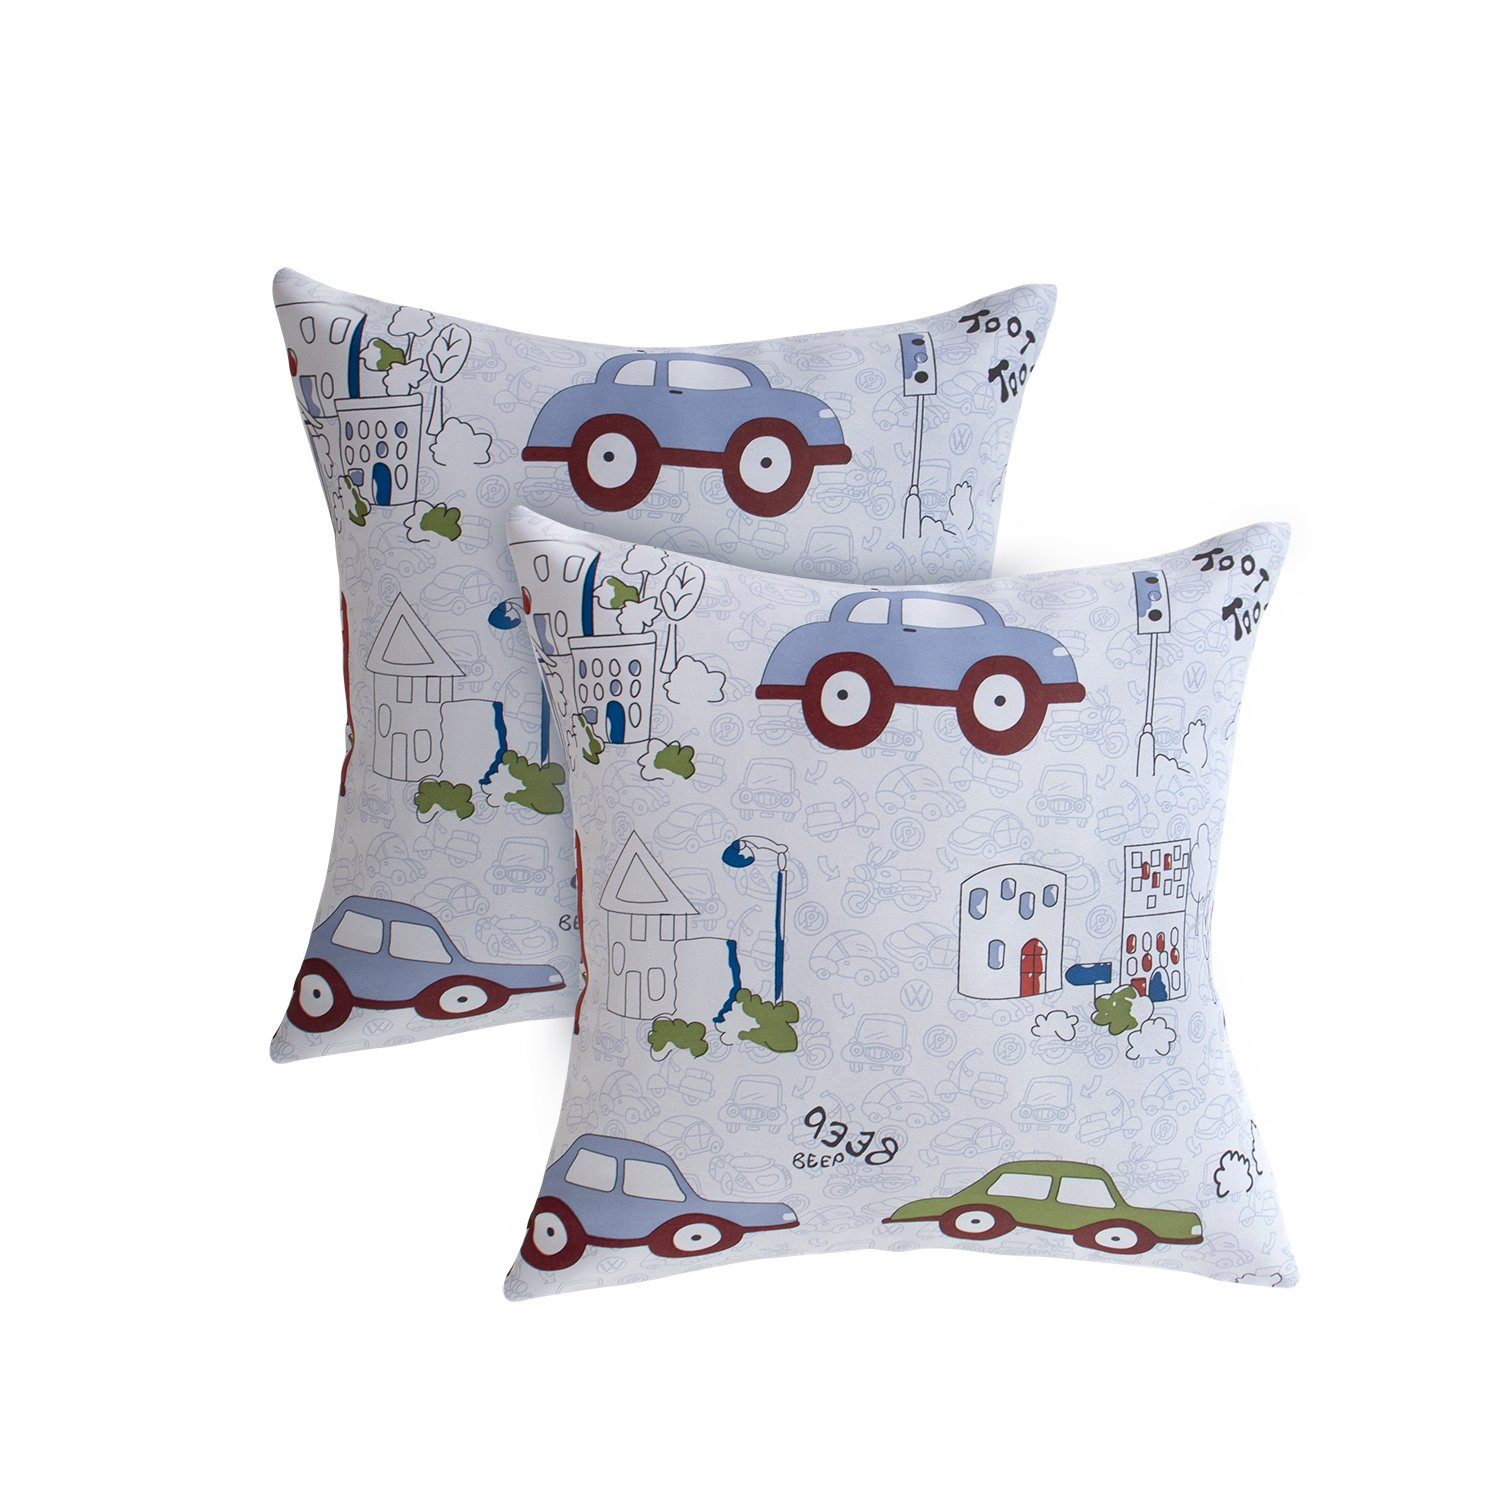 BGment Cartoon Car Pillow Cases Cushion Cover Home Pillowcase Soft Bed Square Pillowcover Set of 2,Size 18 x 18 Inch BGment Hometex